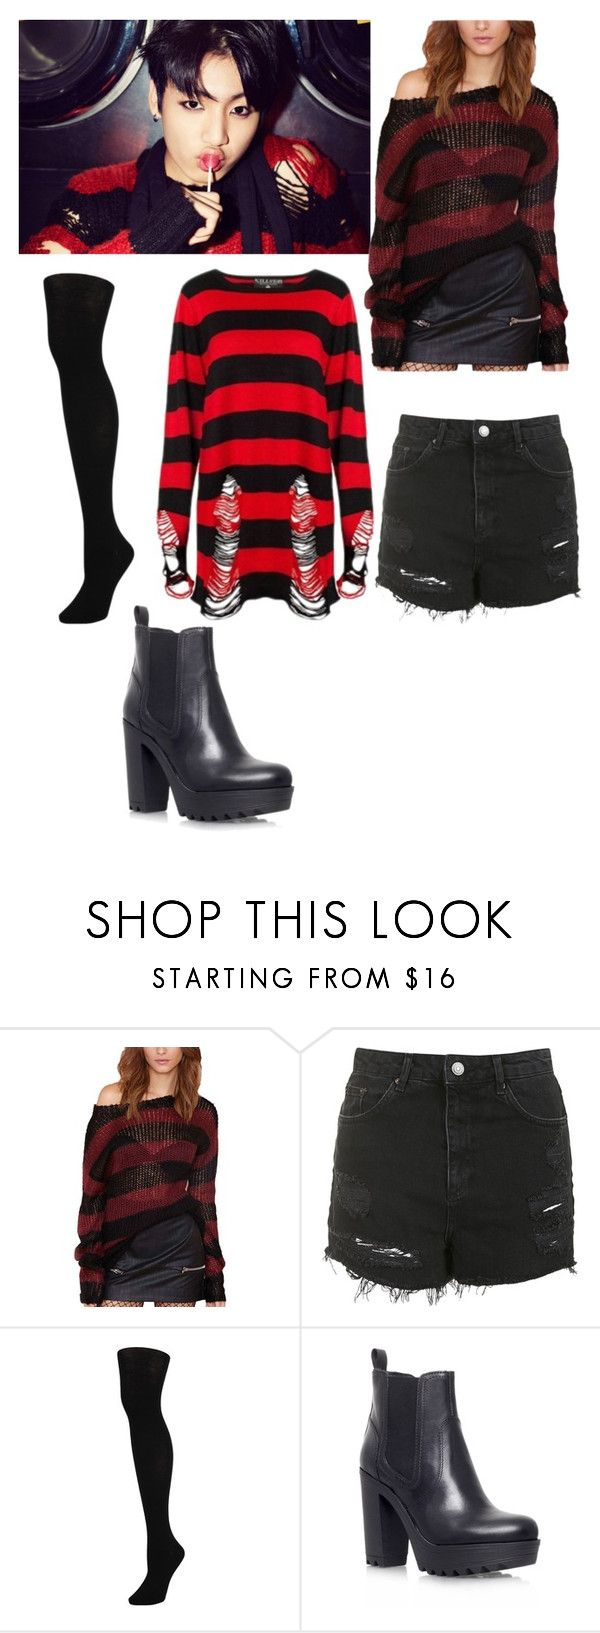 """Jungkook Inspired Outfit from BTS' 'War of Hormones'"" by kaisper ❤ liked on Polyvore featuring Killstar, Topshop, Hue, KG Kurt Geiger, bts, jungkook and kpopinspired"